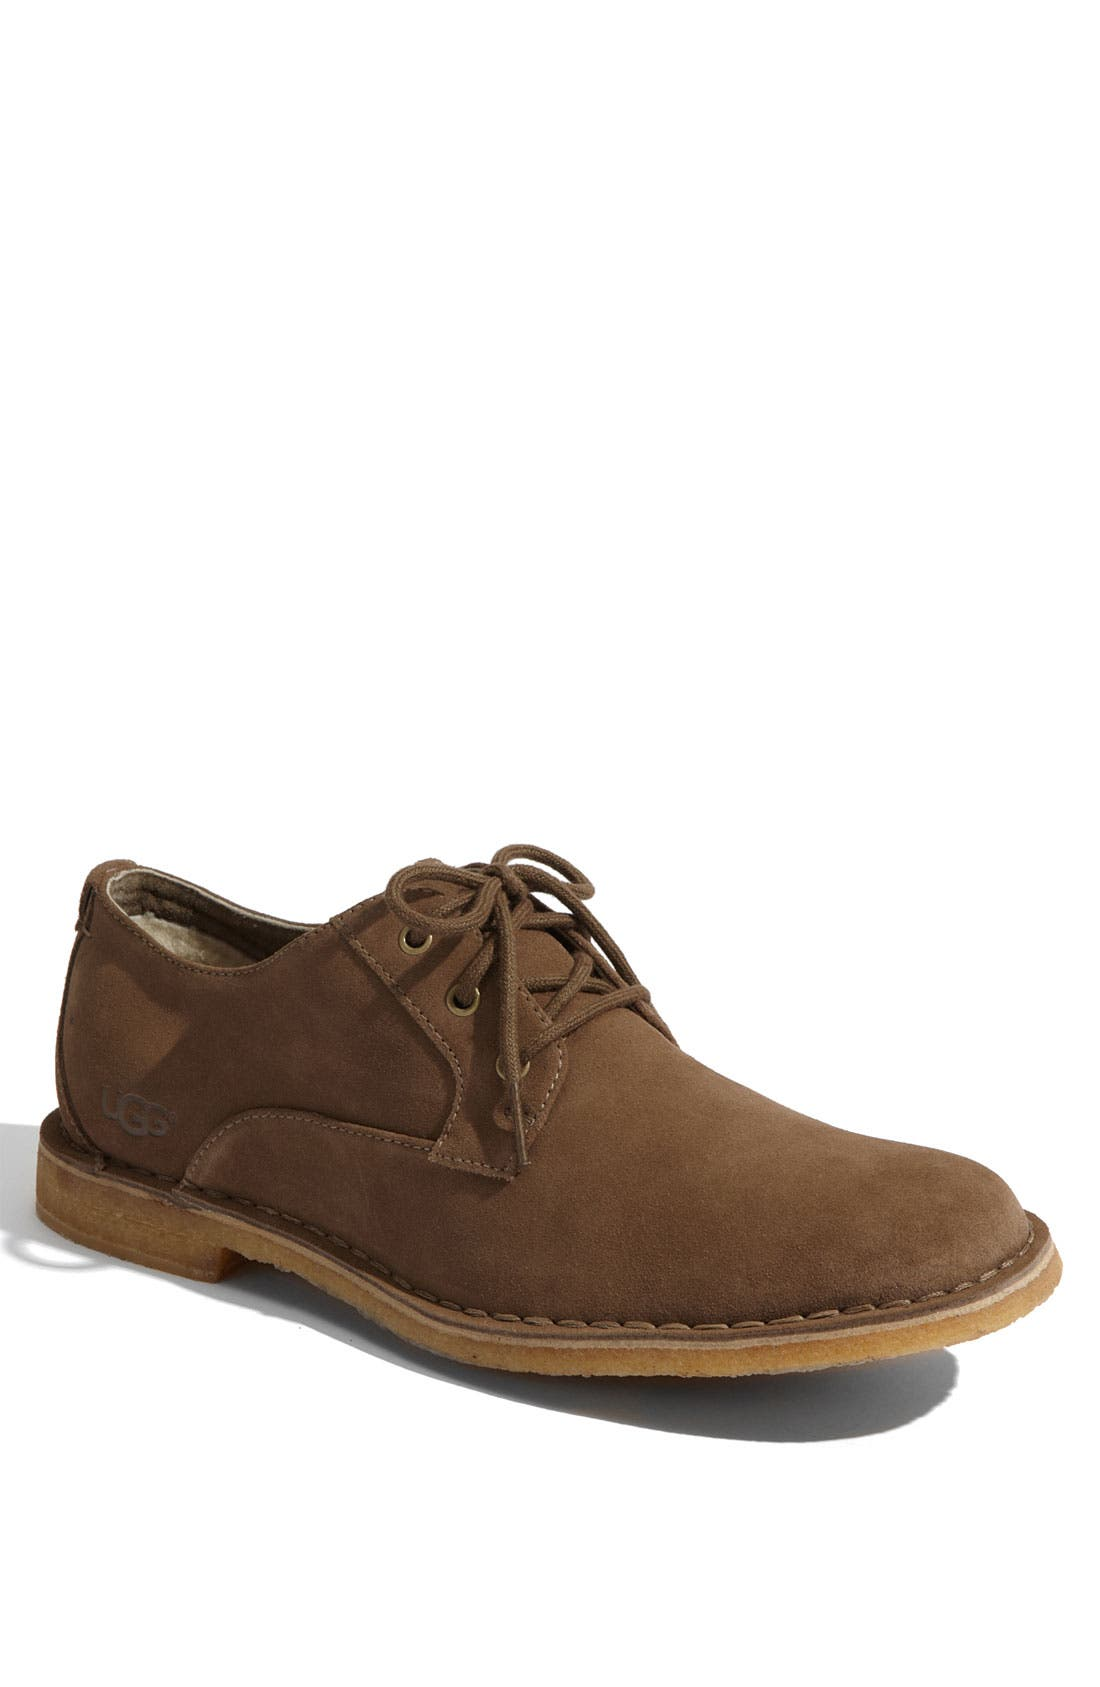 Alternate Image 1 Selected - UGG® Australia 'Chaucer' Oxford (Men)